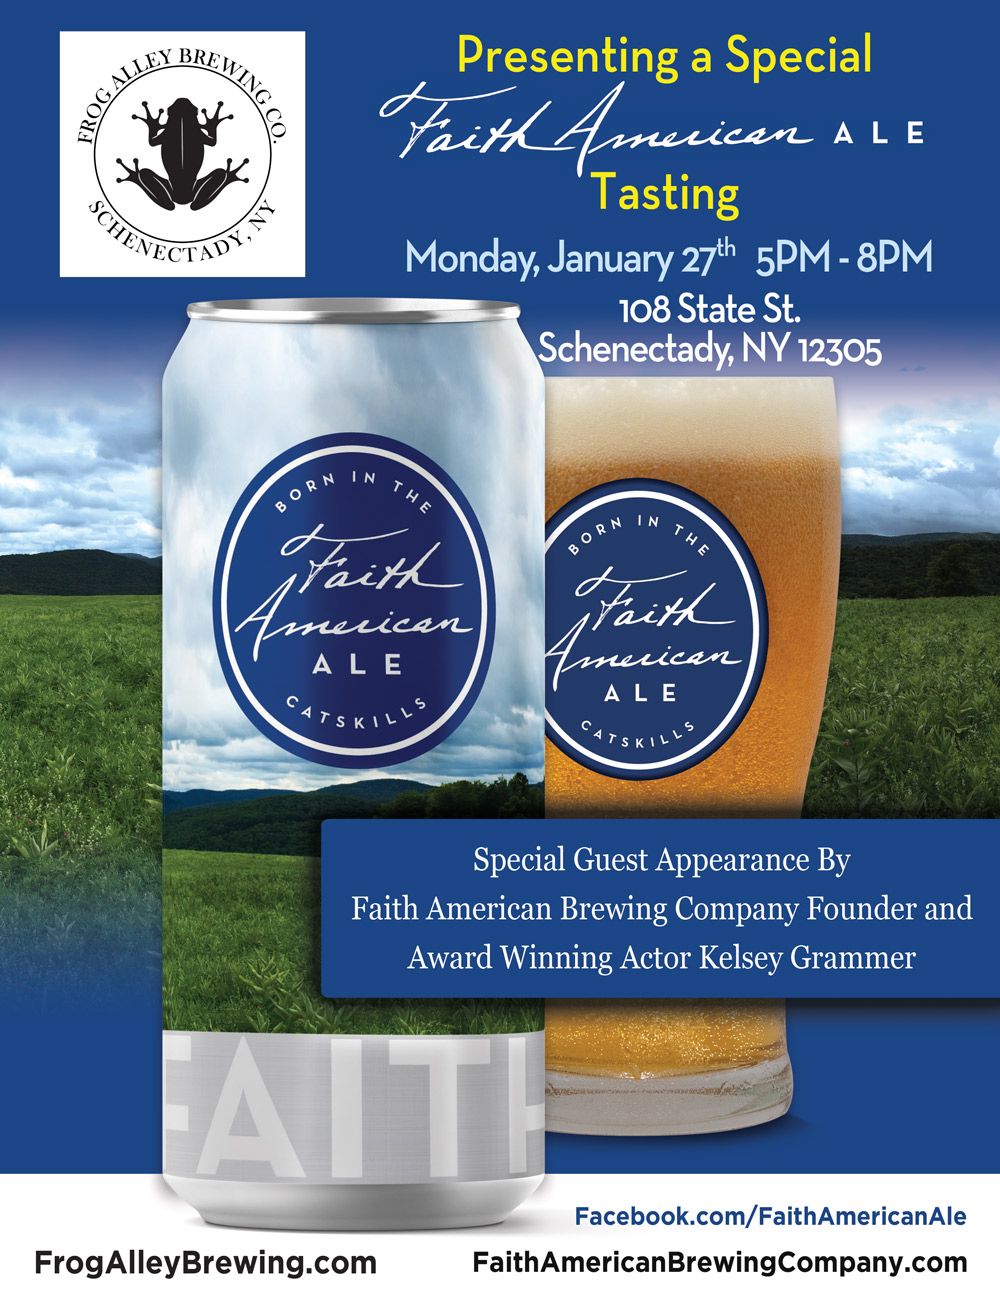 A Special Faith American Ale Tasting Event at Frog Alley Brewing Co